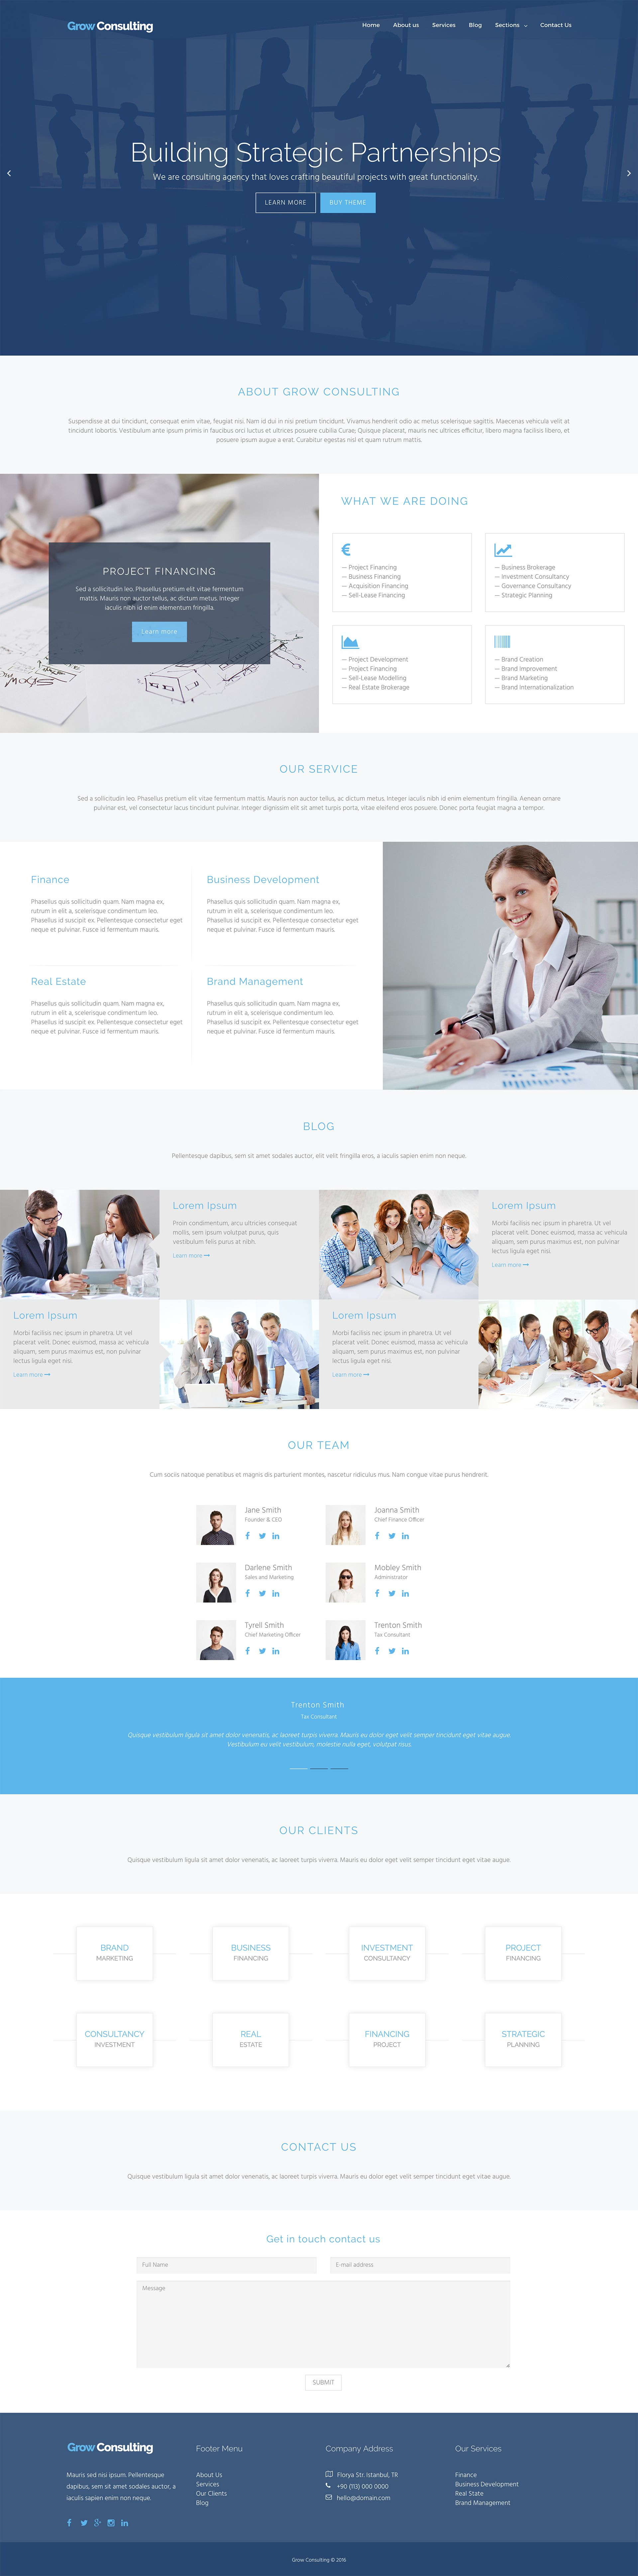 Grow Consulting - Business HTML Bootstrap Template Screenshot 3